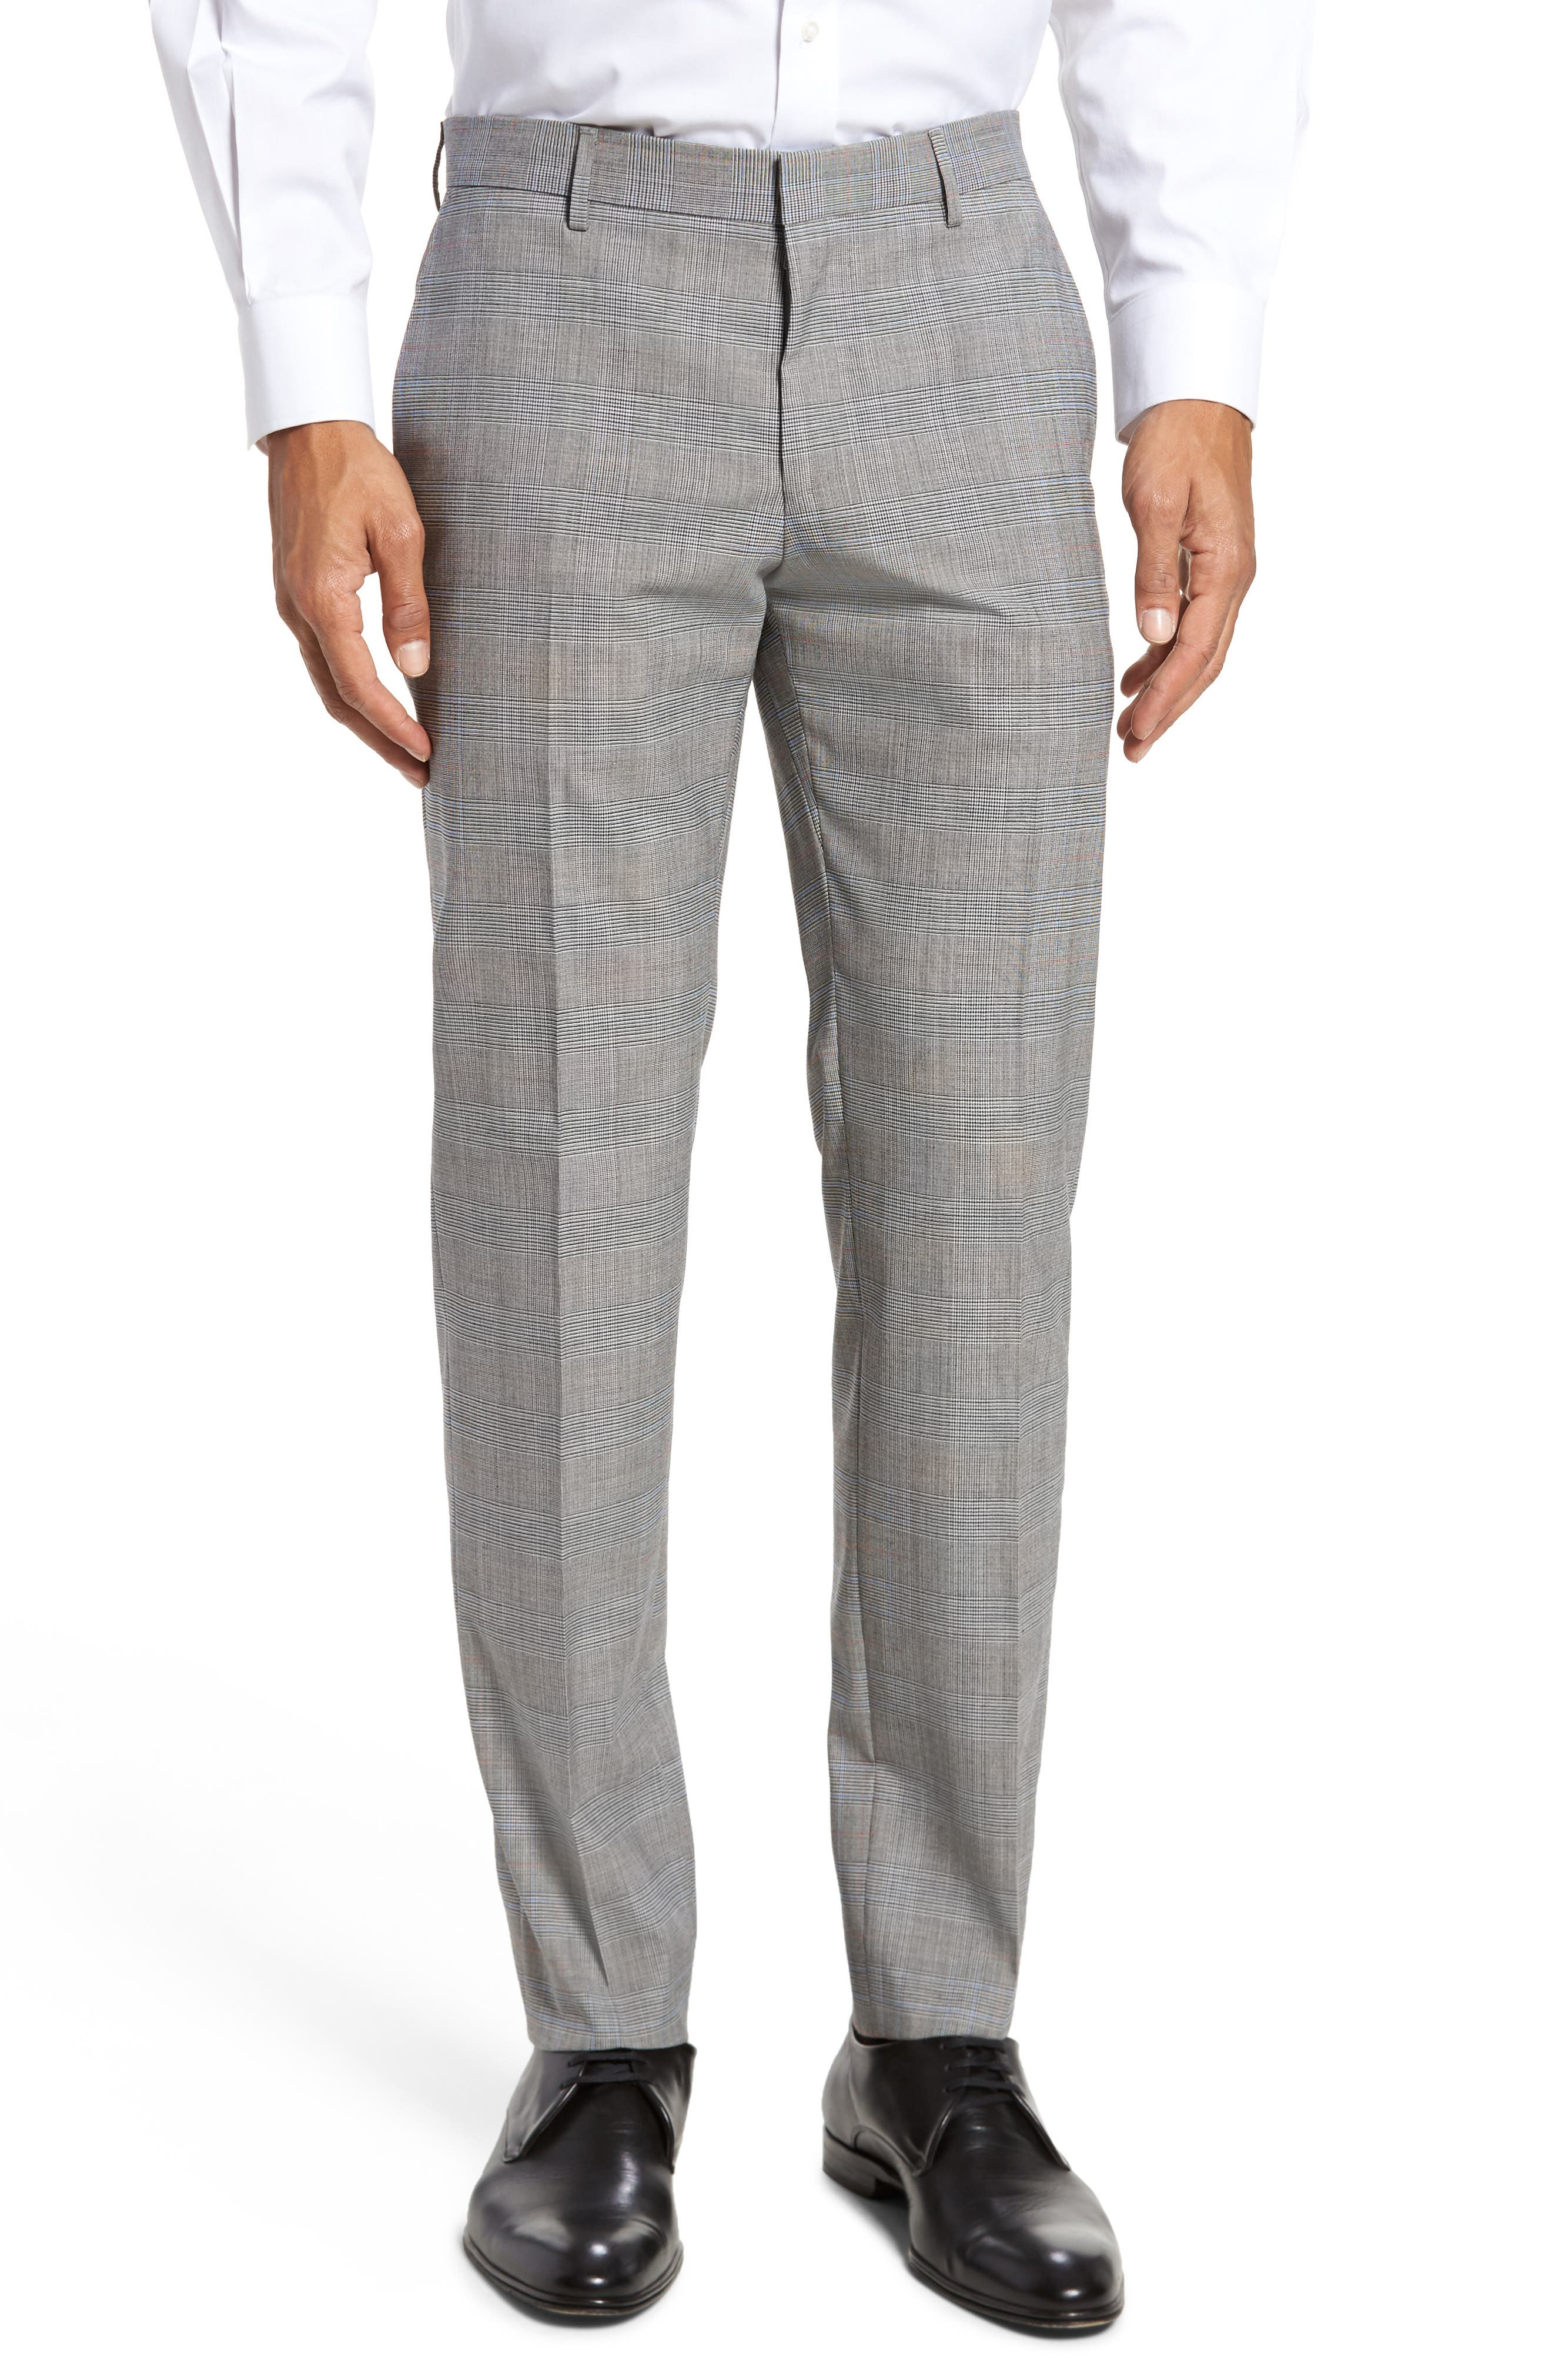 Benso Flat Front Plaid Wool Blend Trousers,                         Main,                         color, 061